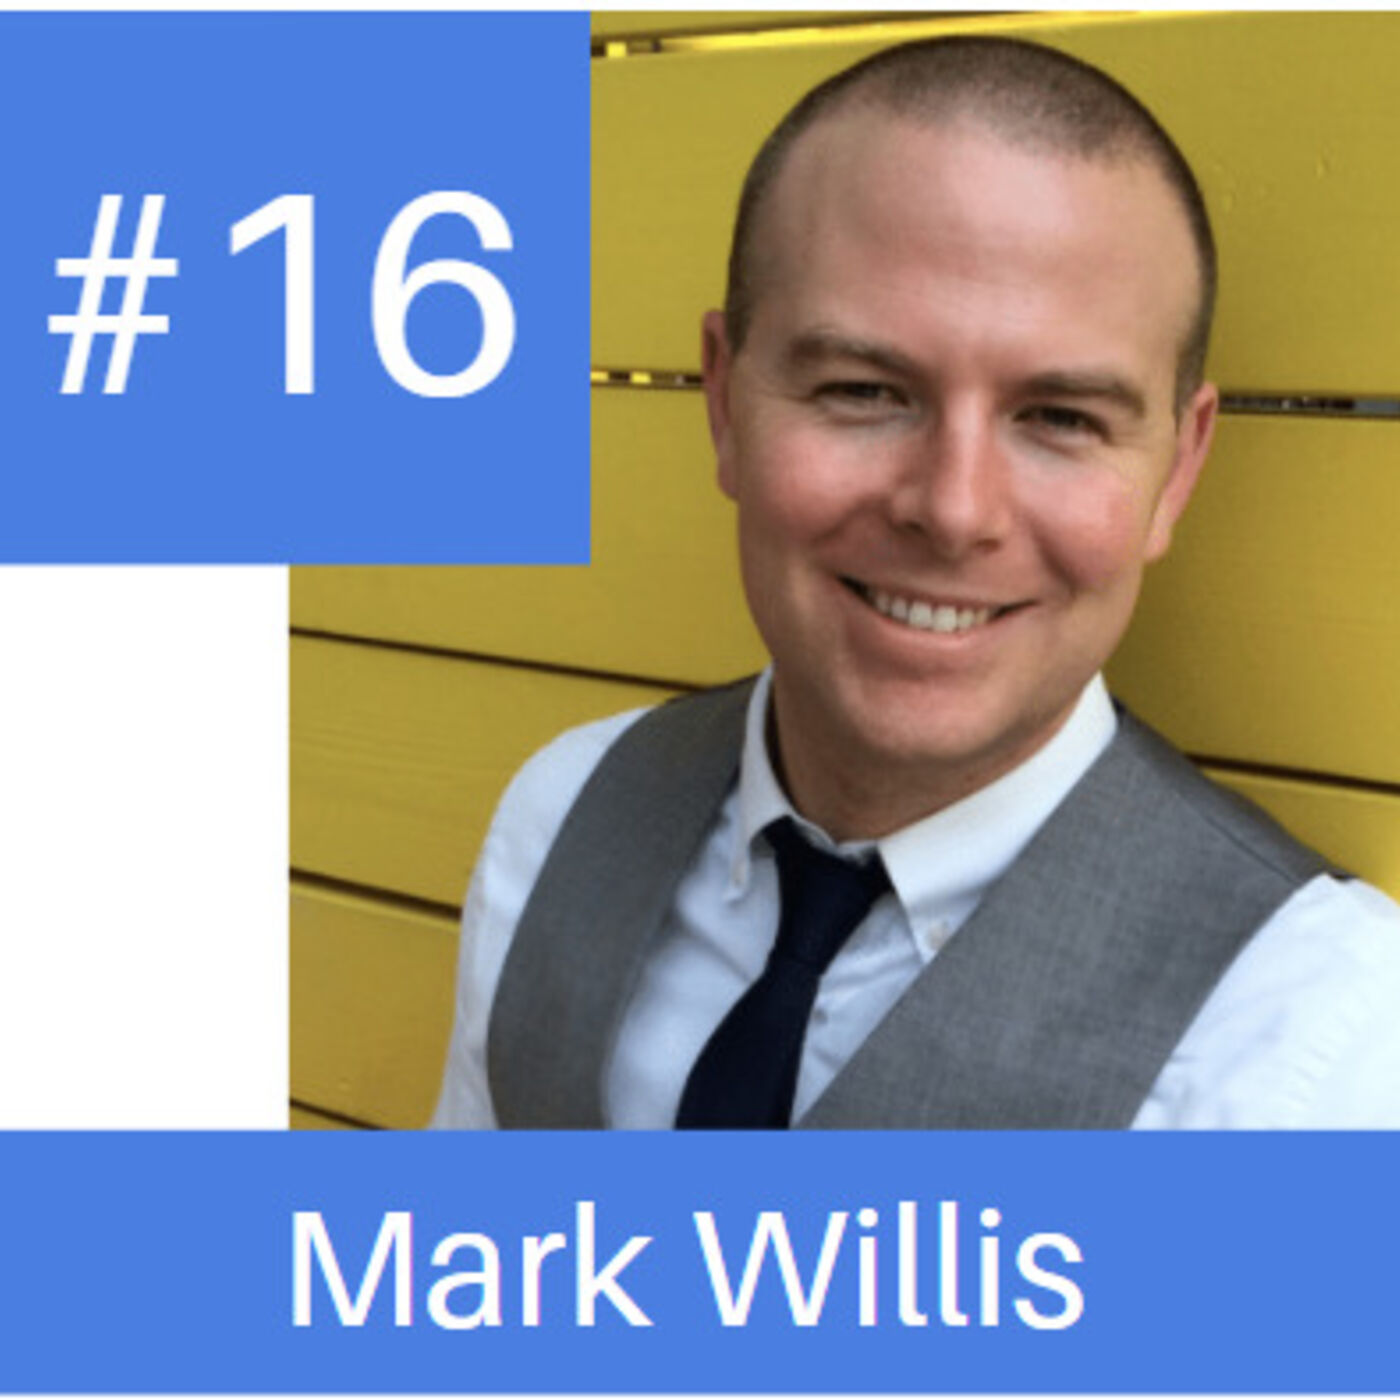 Episode # 16 - How to Become Your Own Bank Featuring Financial Planning Expert Mark Willis